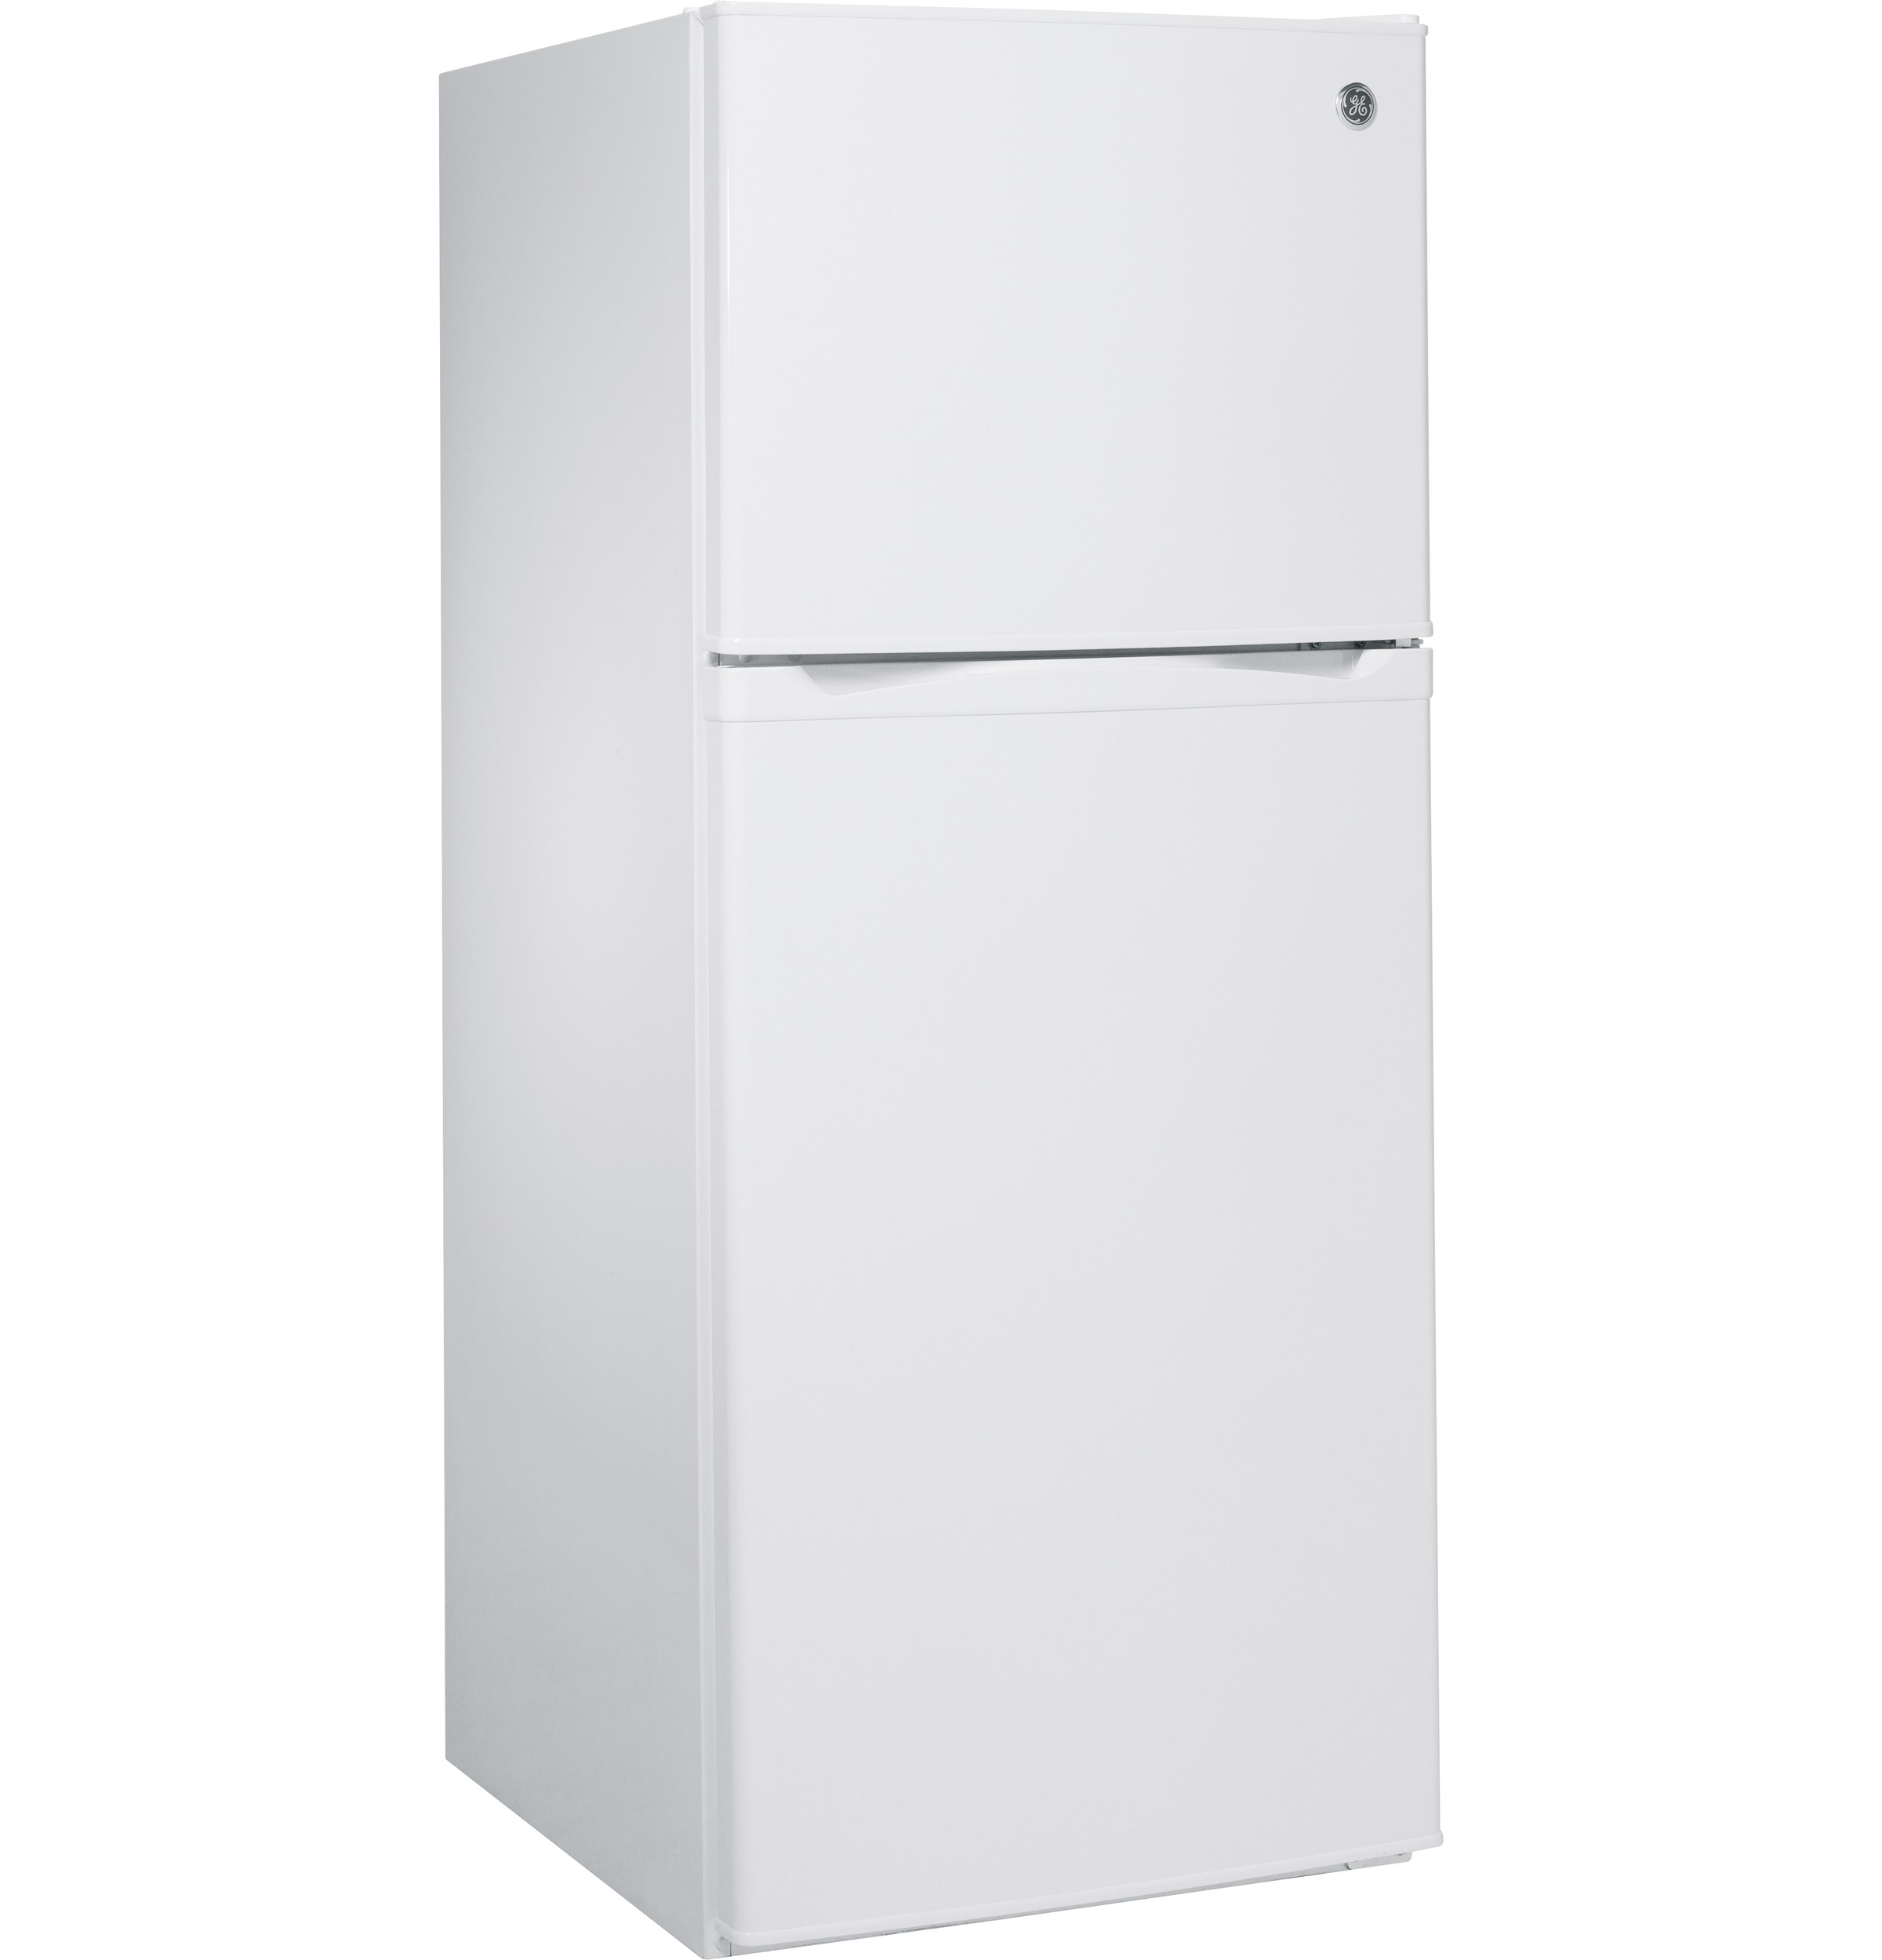 Model: GPE12FGKWW | GE GE® ENERGY STAR® 11.6 cu. ft. Top-Freezer Refrigerator